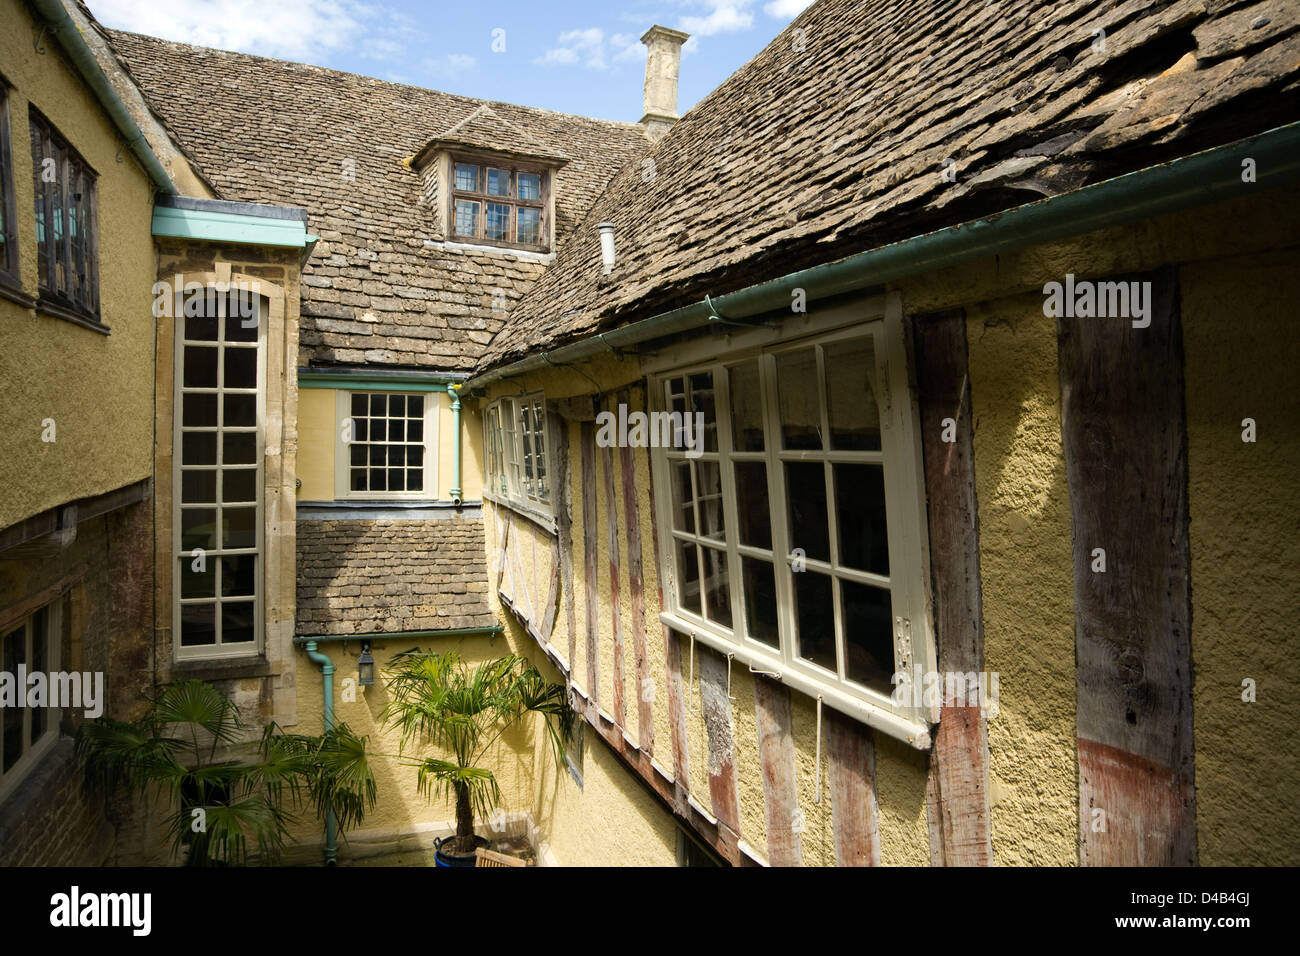 uk real estate a variety of architectural styles of window in a